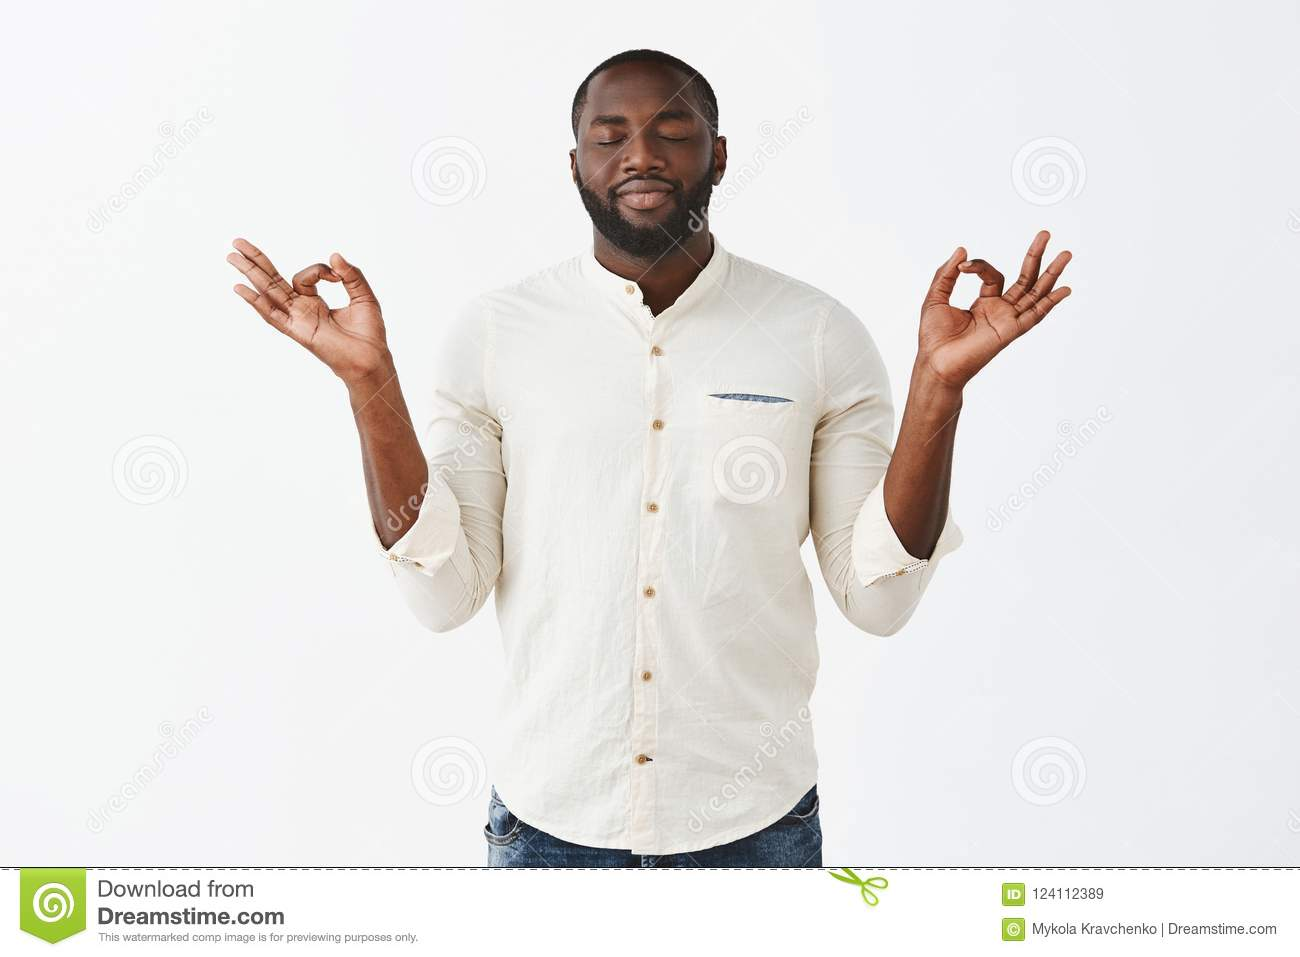 Stress floats away with every minute during meditation. Happy relieved dark-skinned calm man with beard in casual outfit